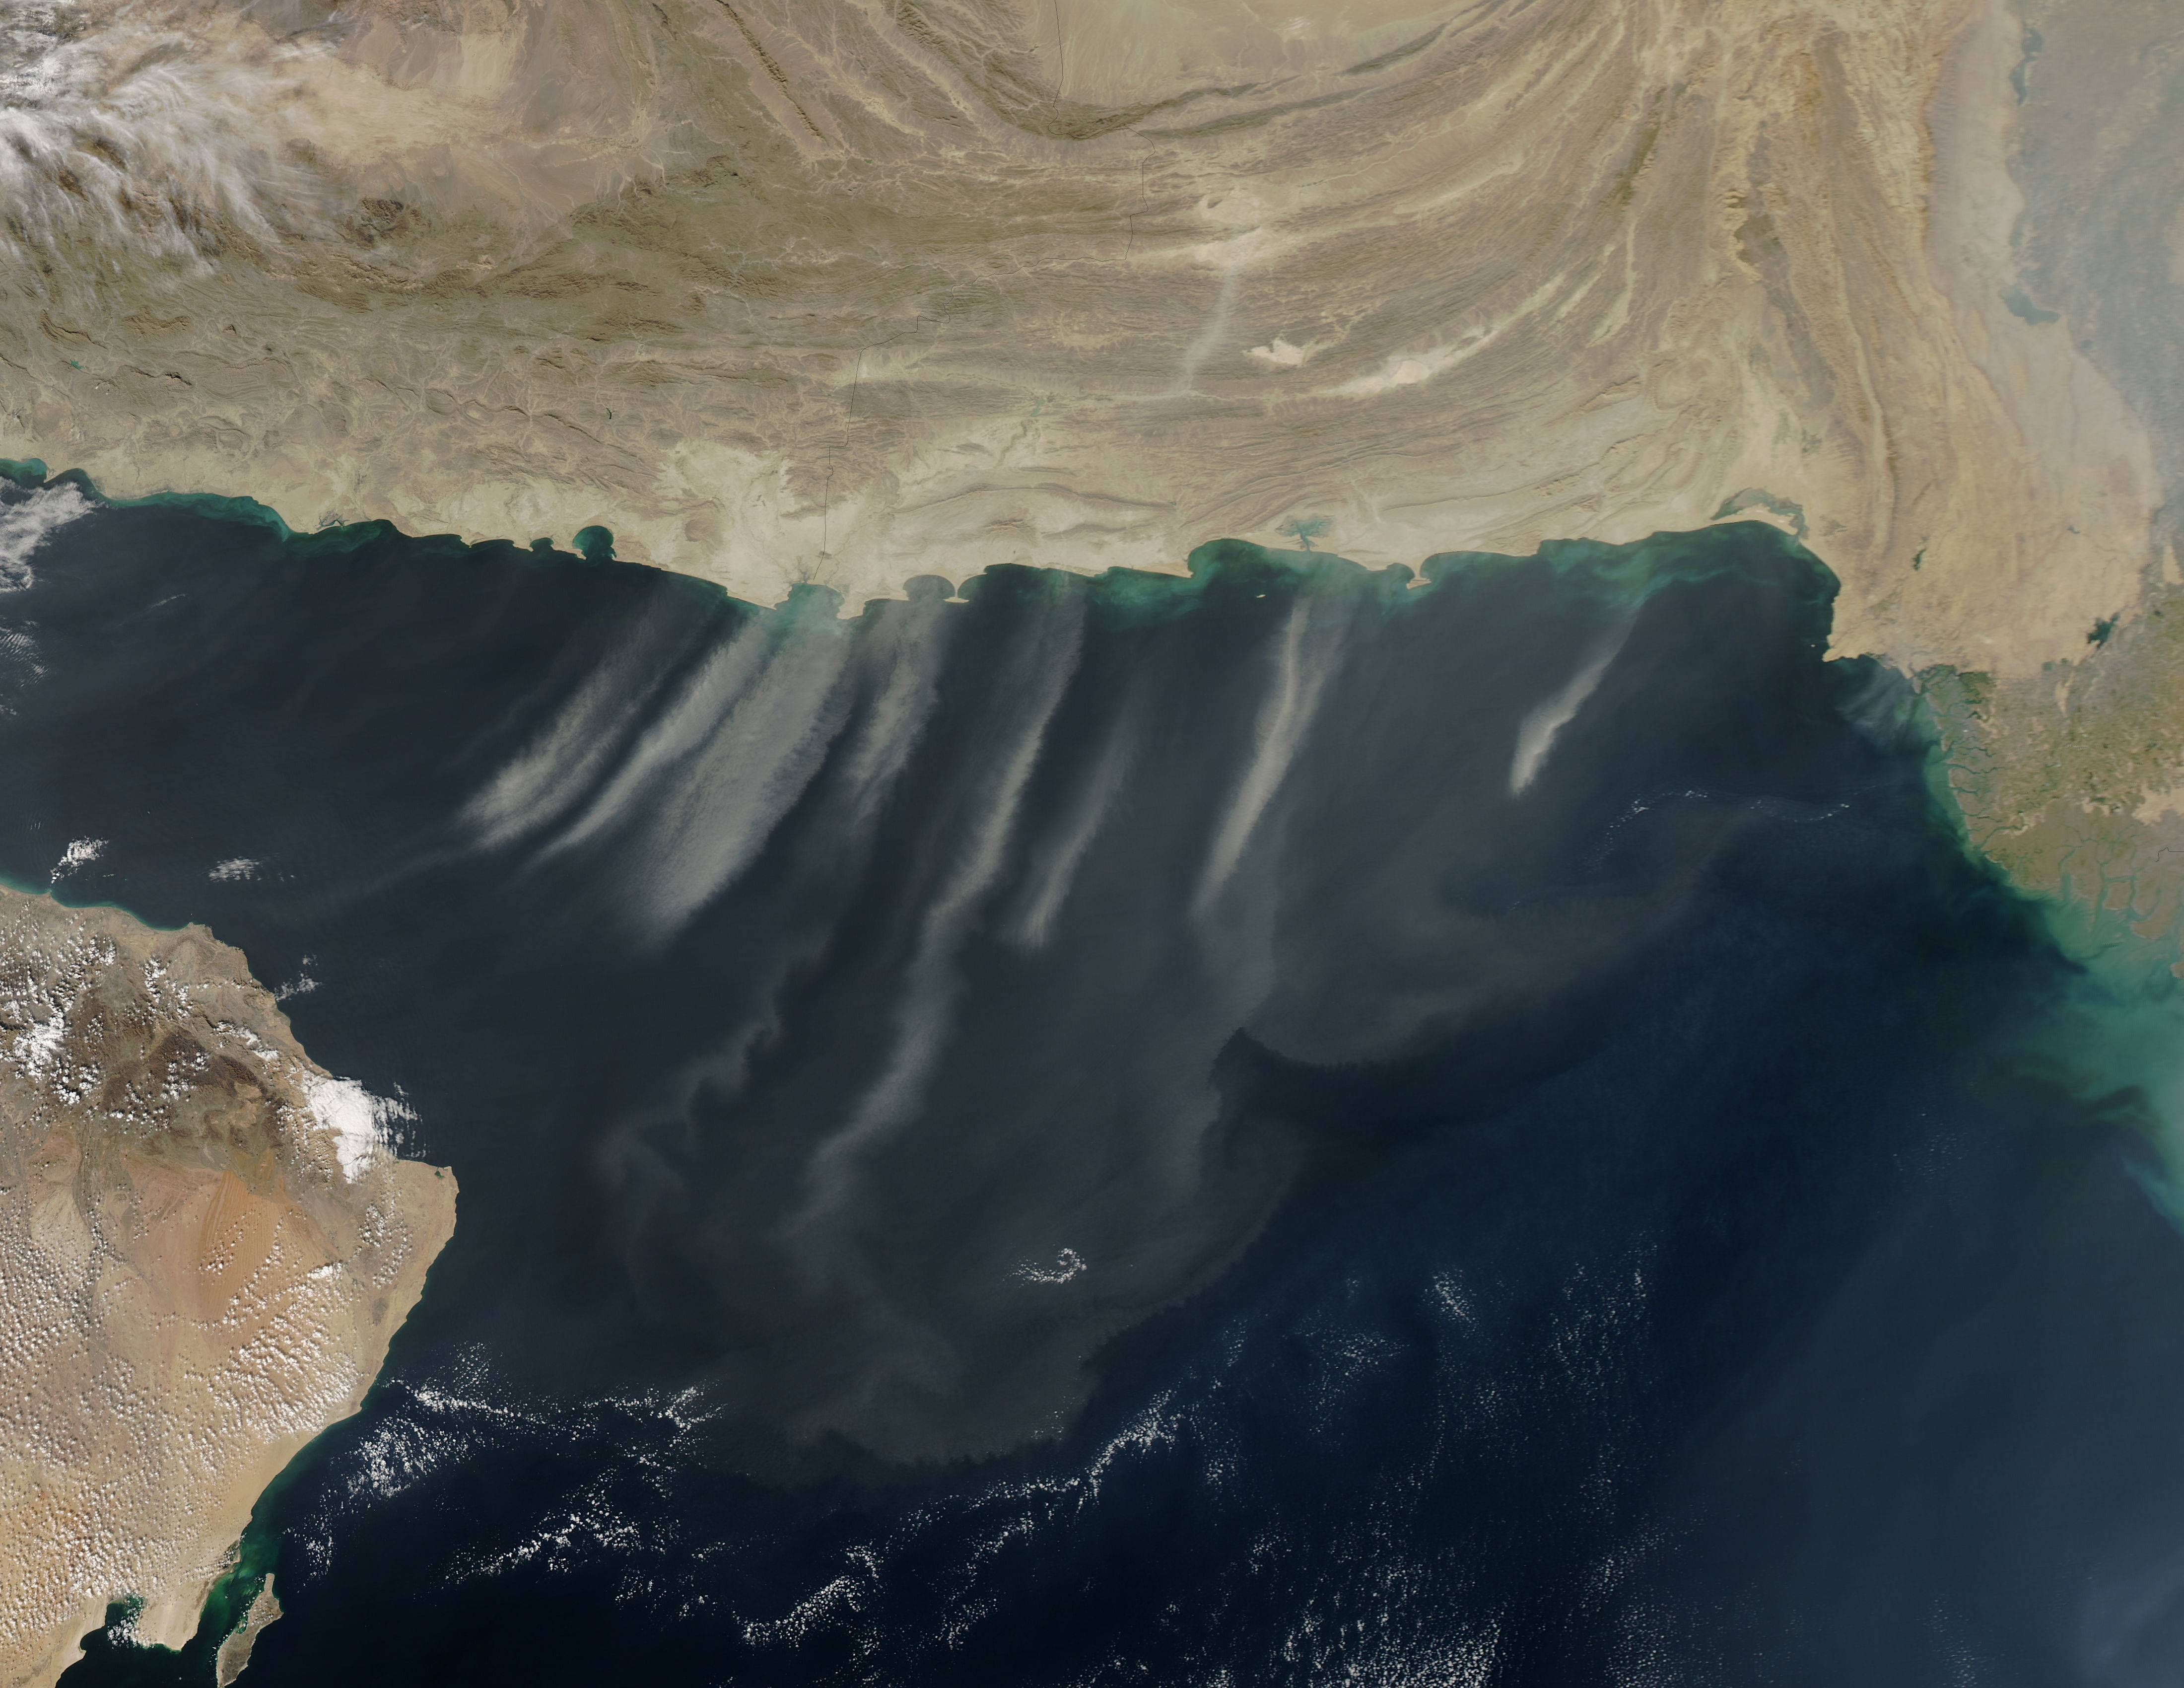 Dust storms over the Arabian Sea